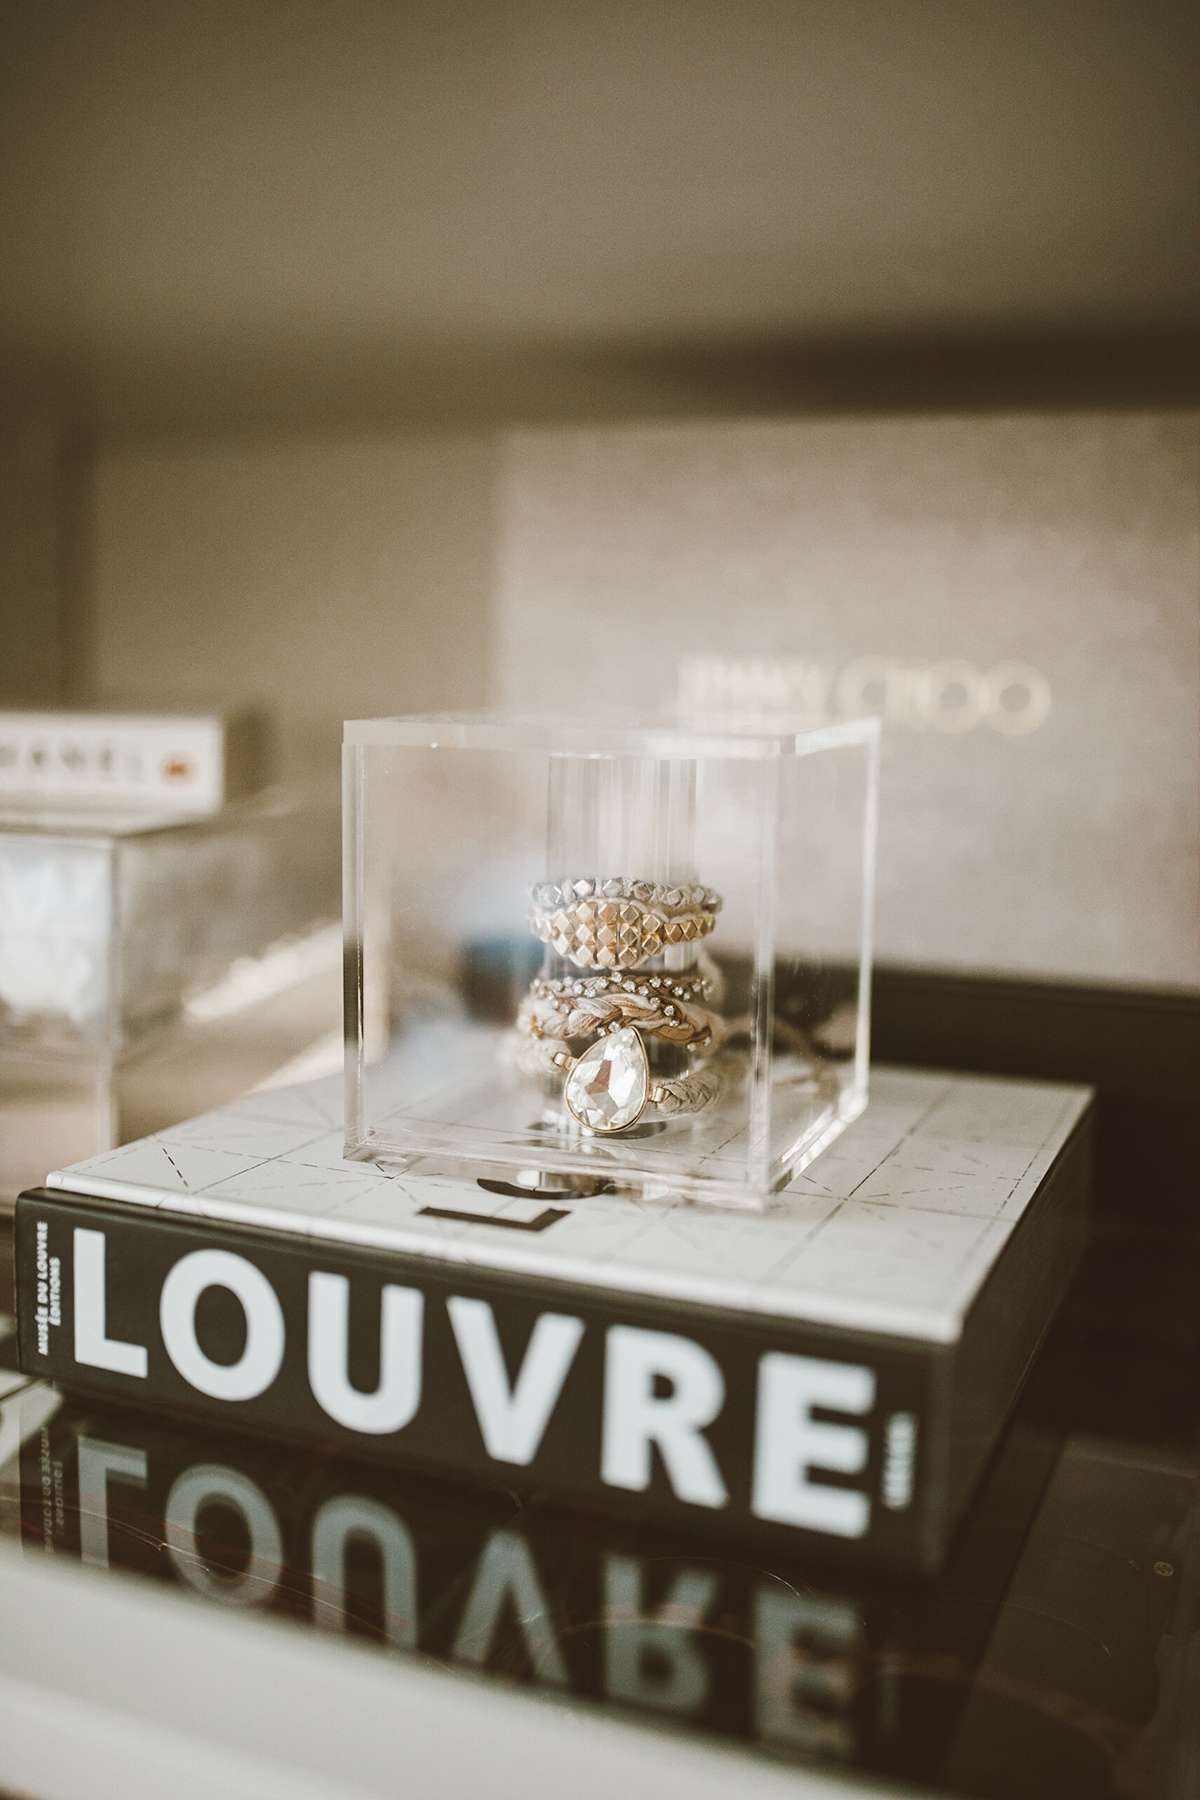 lucite jewelry bracelet holder and organizer from the container store in So Sage Blog's cloffice space